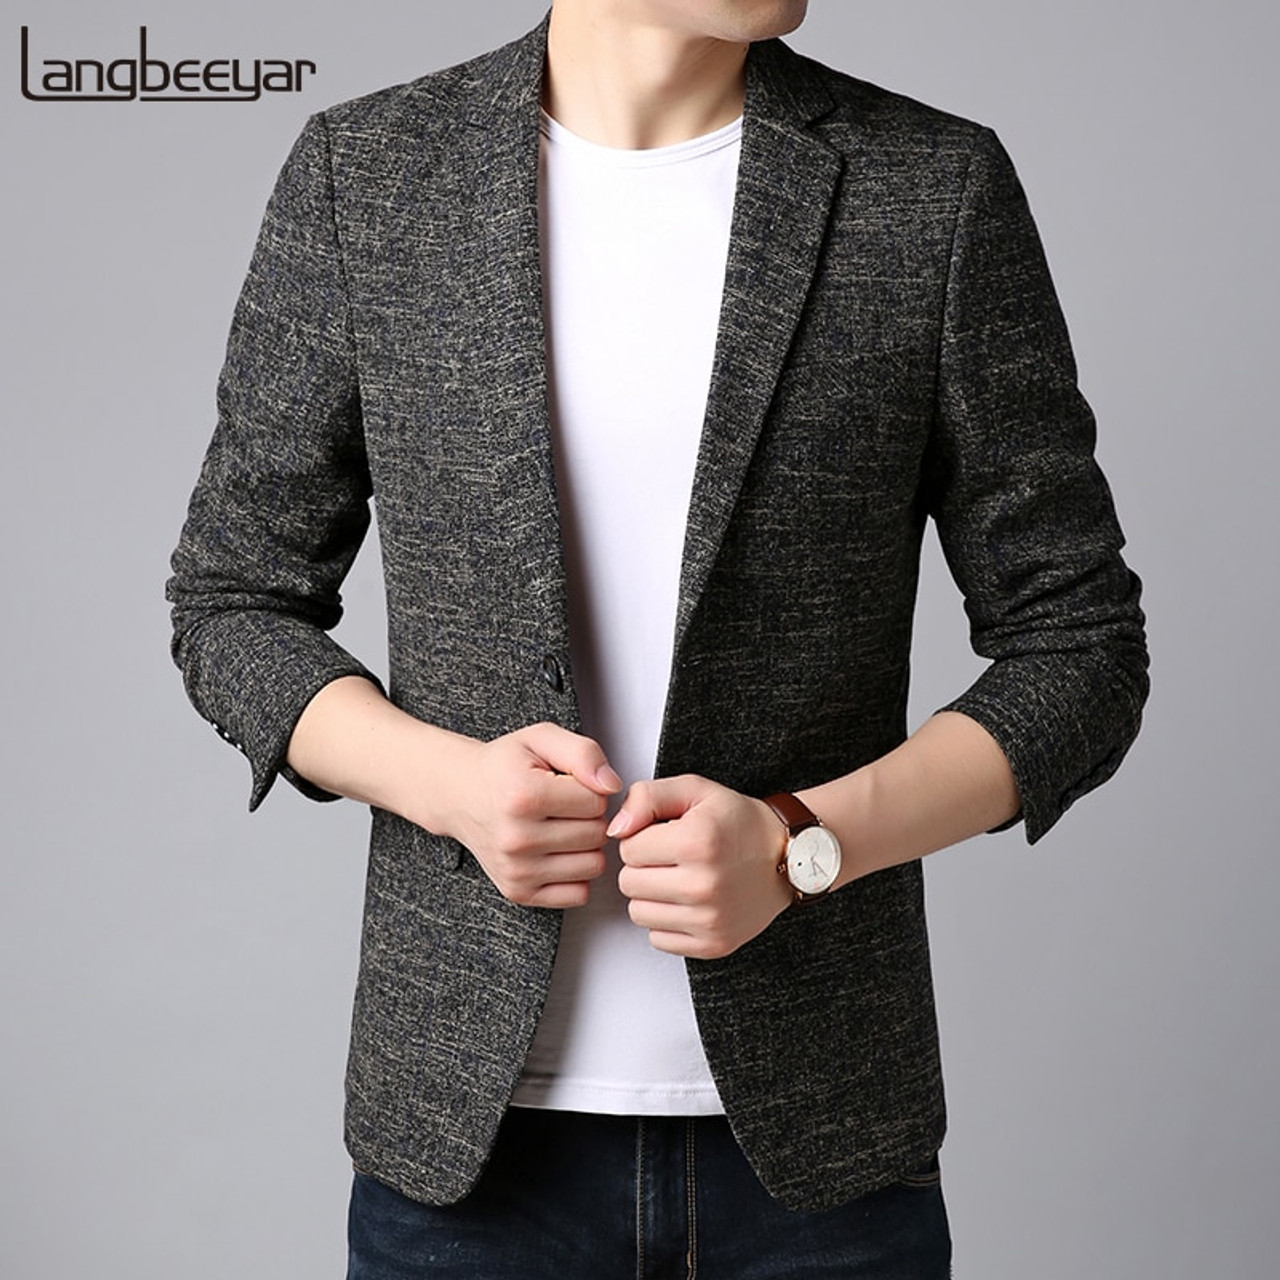 2018 New Fashion Brand Blazer Jacket Men Korean Slim Fit Suits Coat Pattern  Pattern Party Dress Trending Casual Men Clothes - OnshopDeals.Com 58eefdddae4f